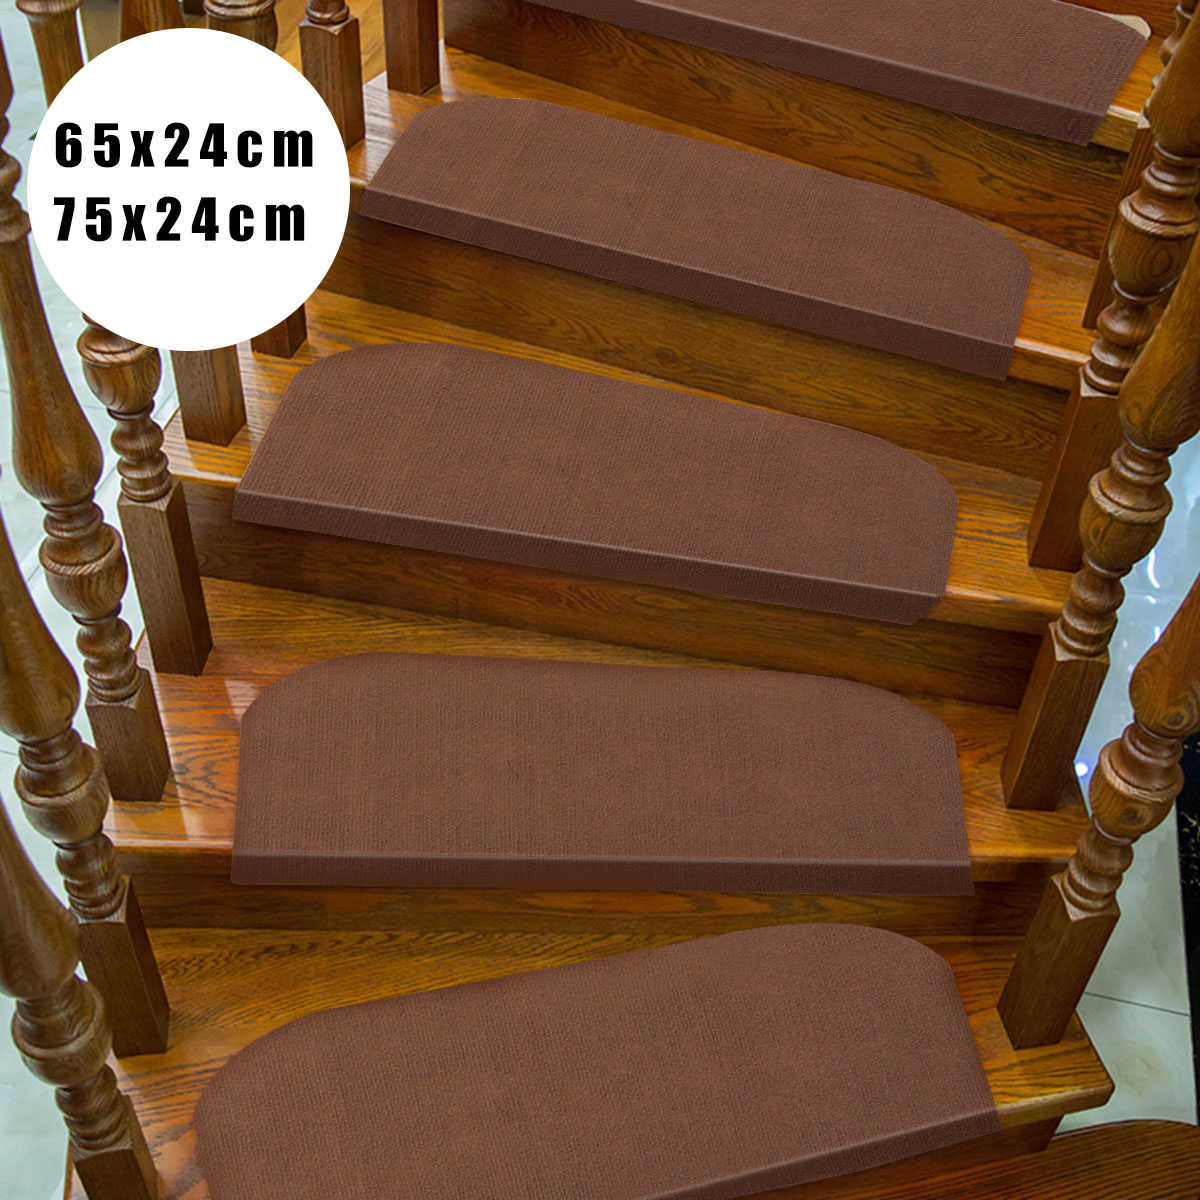 KiWarm 1Pcs Brown Non Slip Carpet Stair Treads Mats Staircase Step Pad Rug  Protection Cover Household Carpet 75x24cm/65x24cm